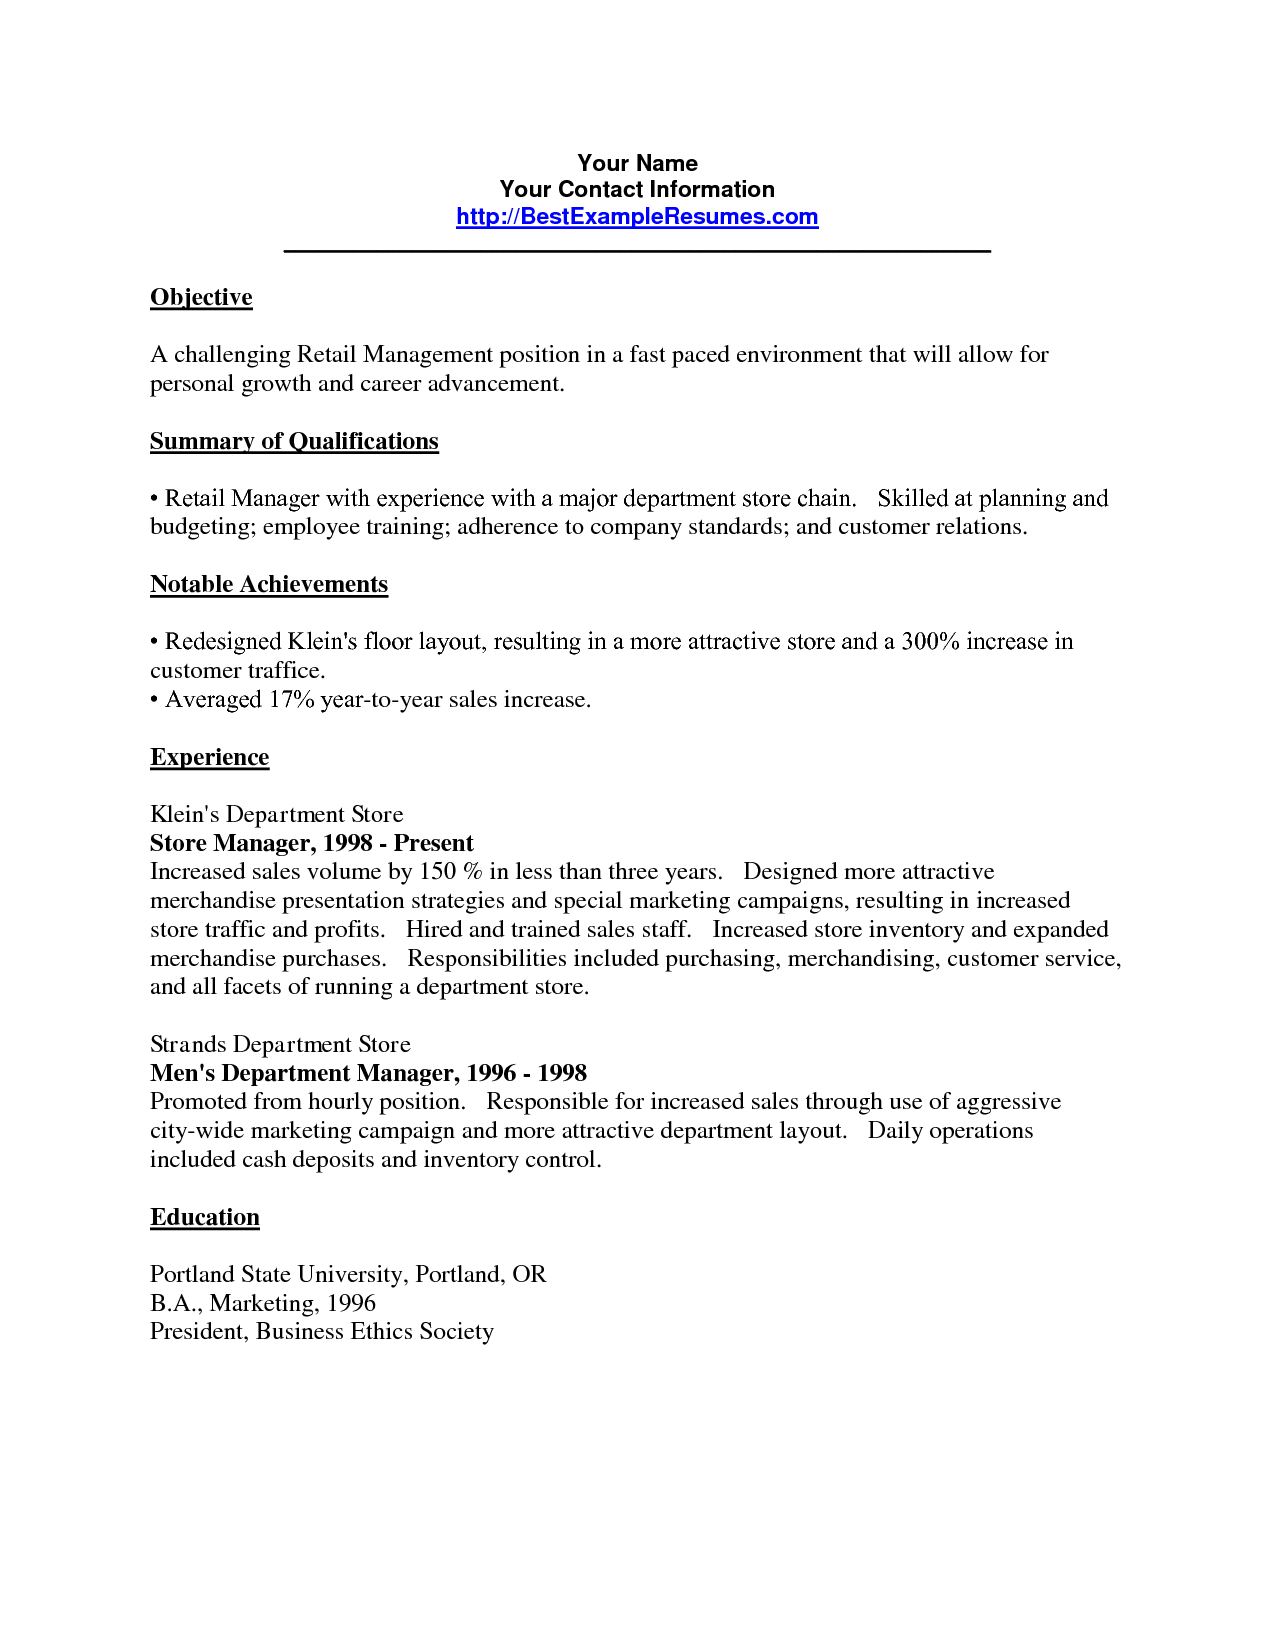 Objective For Retail Resume jmckell.Com